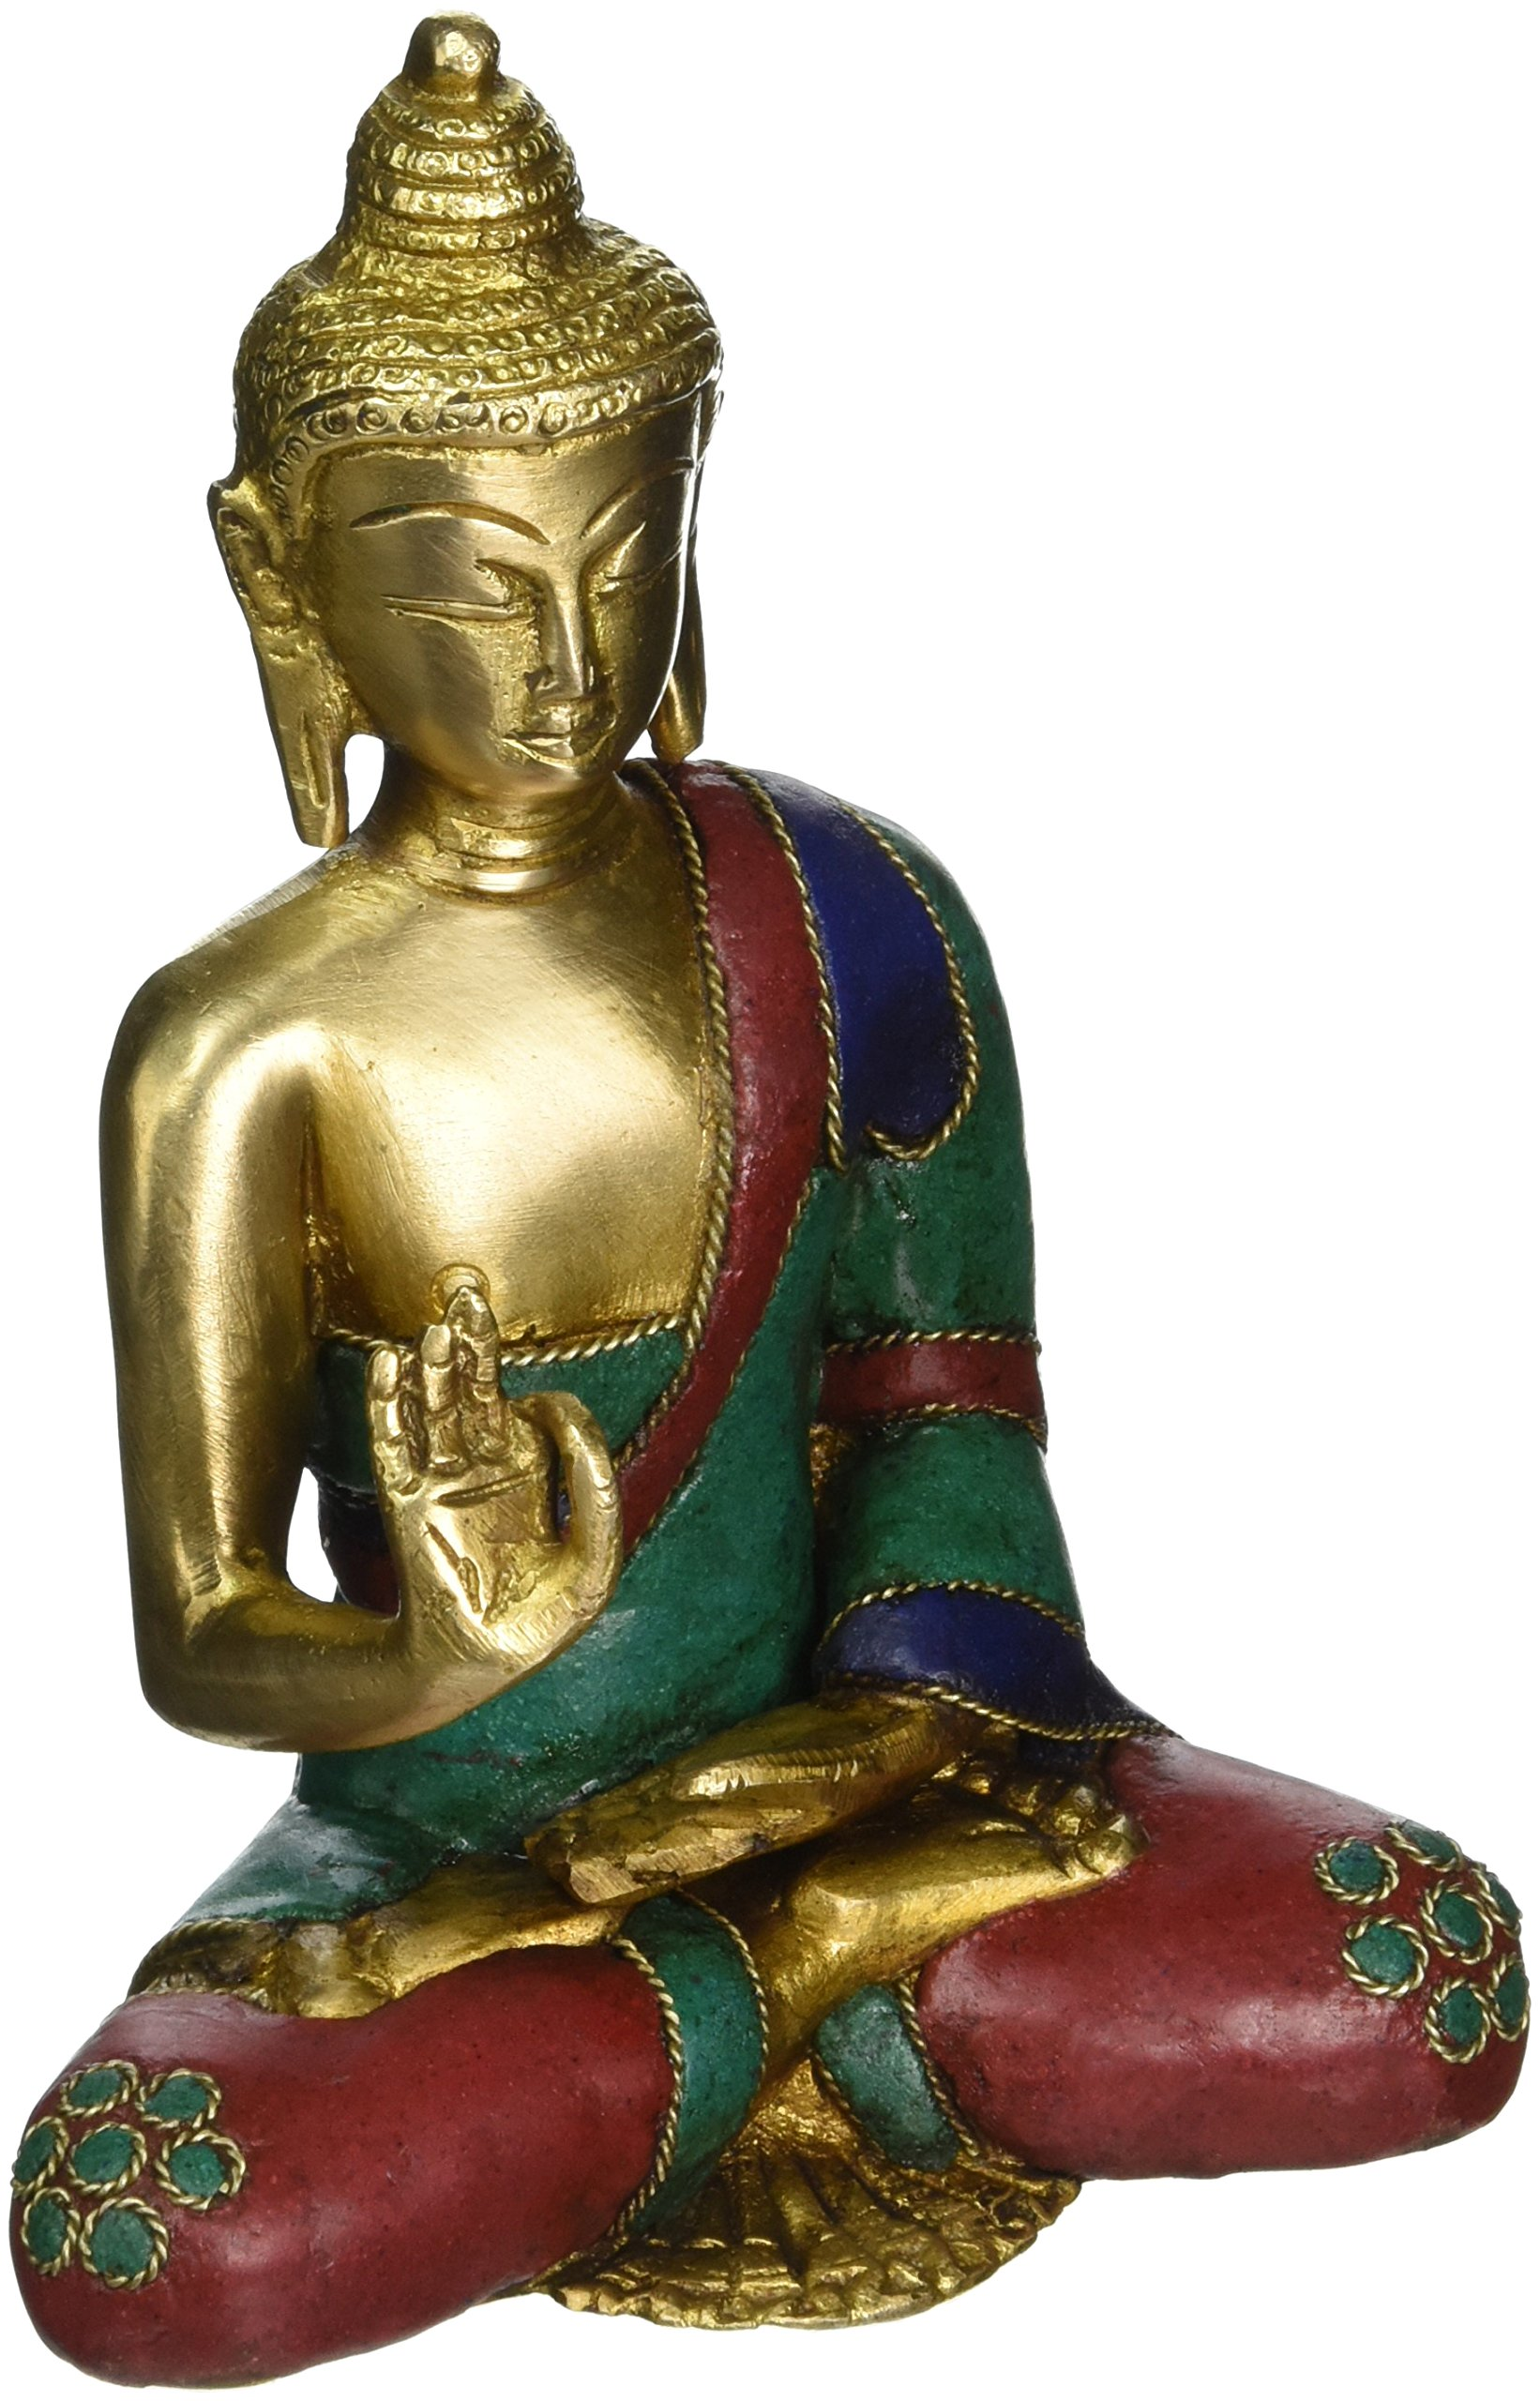 AapnoCraft Thai Blessing/Abhaya Buddha Statue Brass Handmade Shakyamuni Buddha Sculpture Bodhi With Unique Coral & Gemstone Work by AapnoCraft